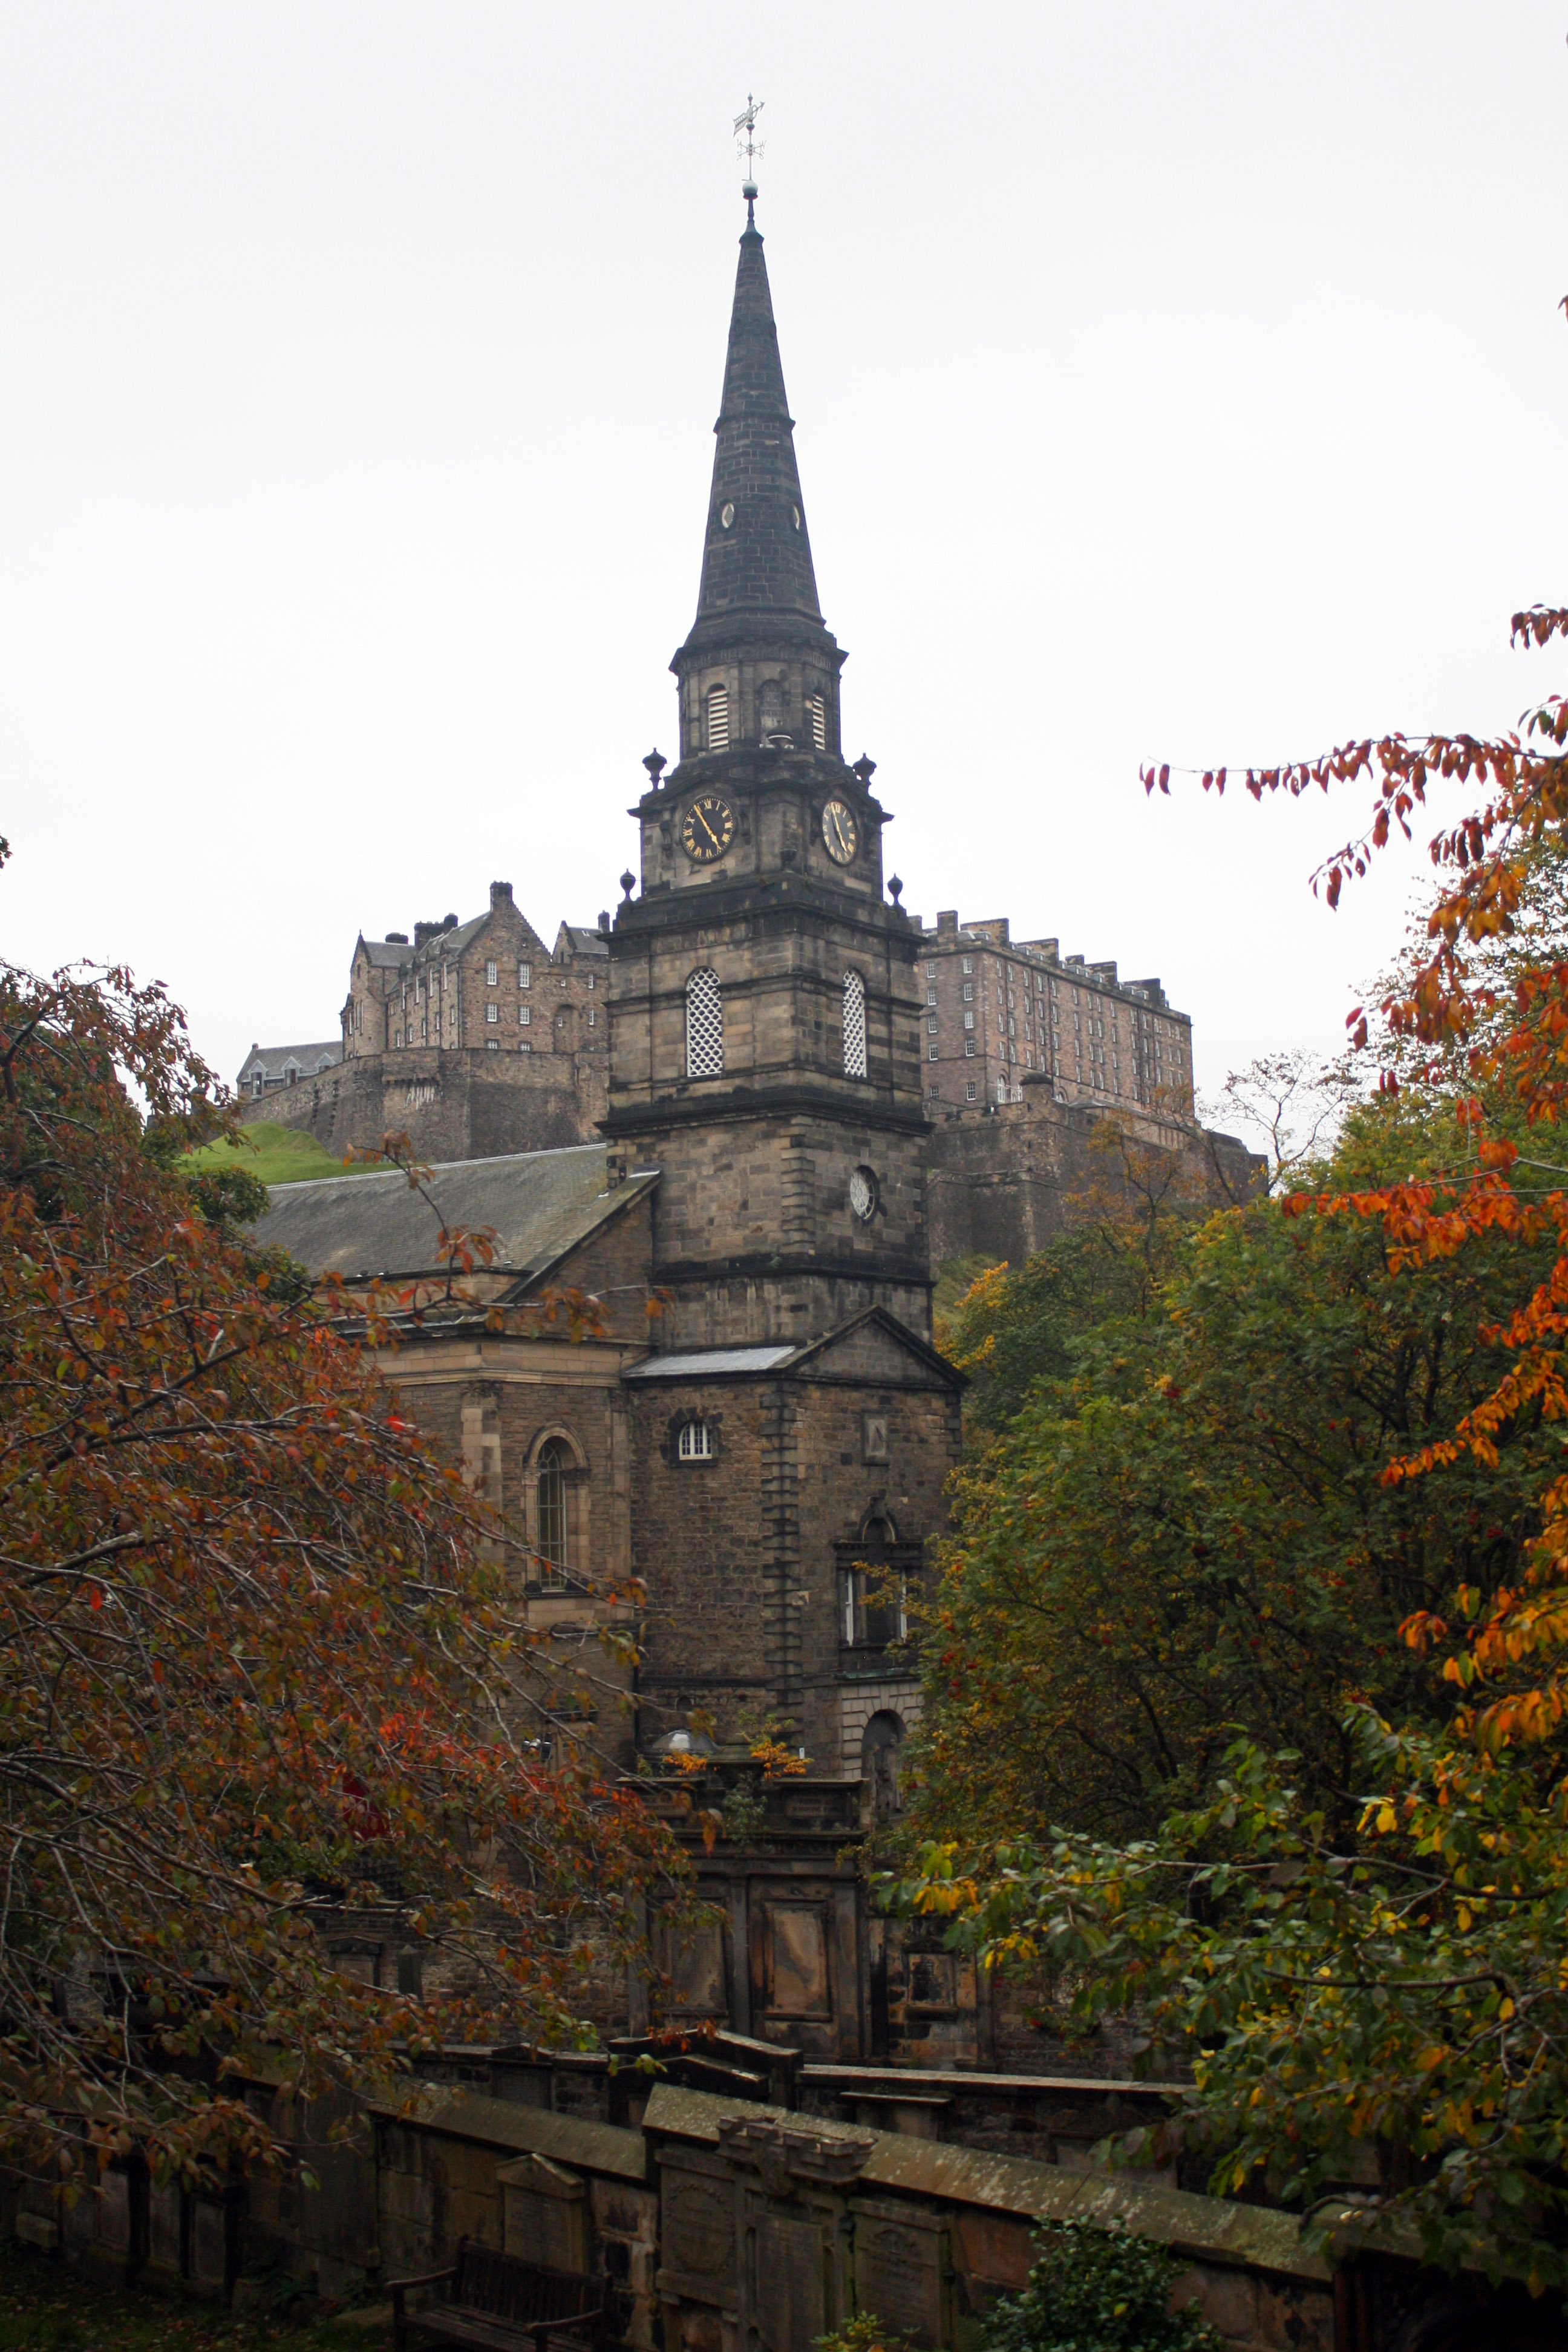 St Cuthbert's church, Edinburgh